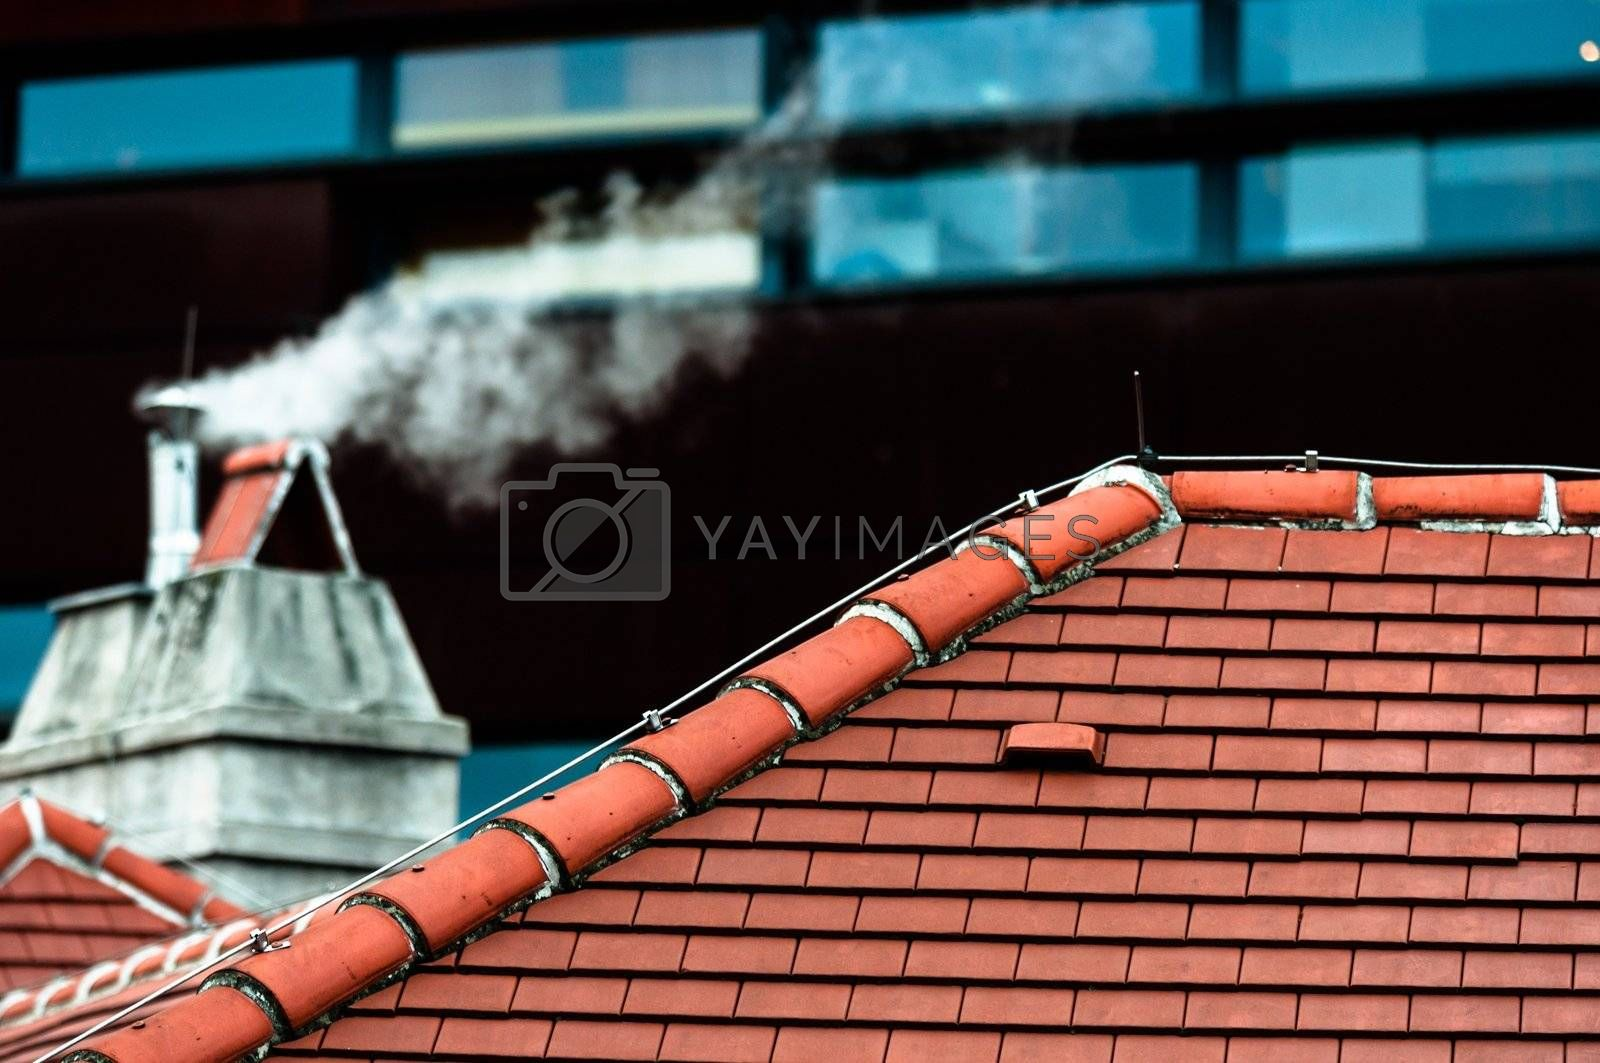 Small chimney with smoke of a house